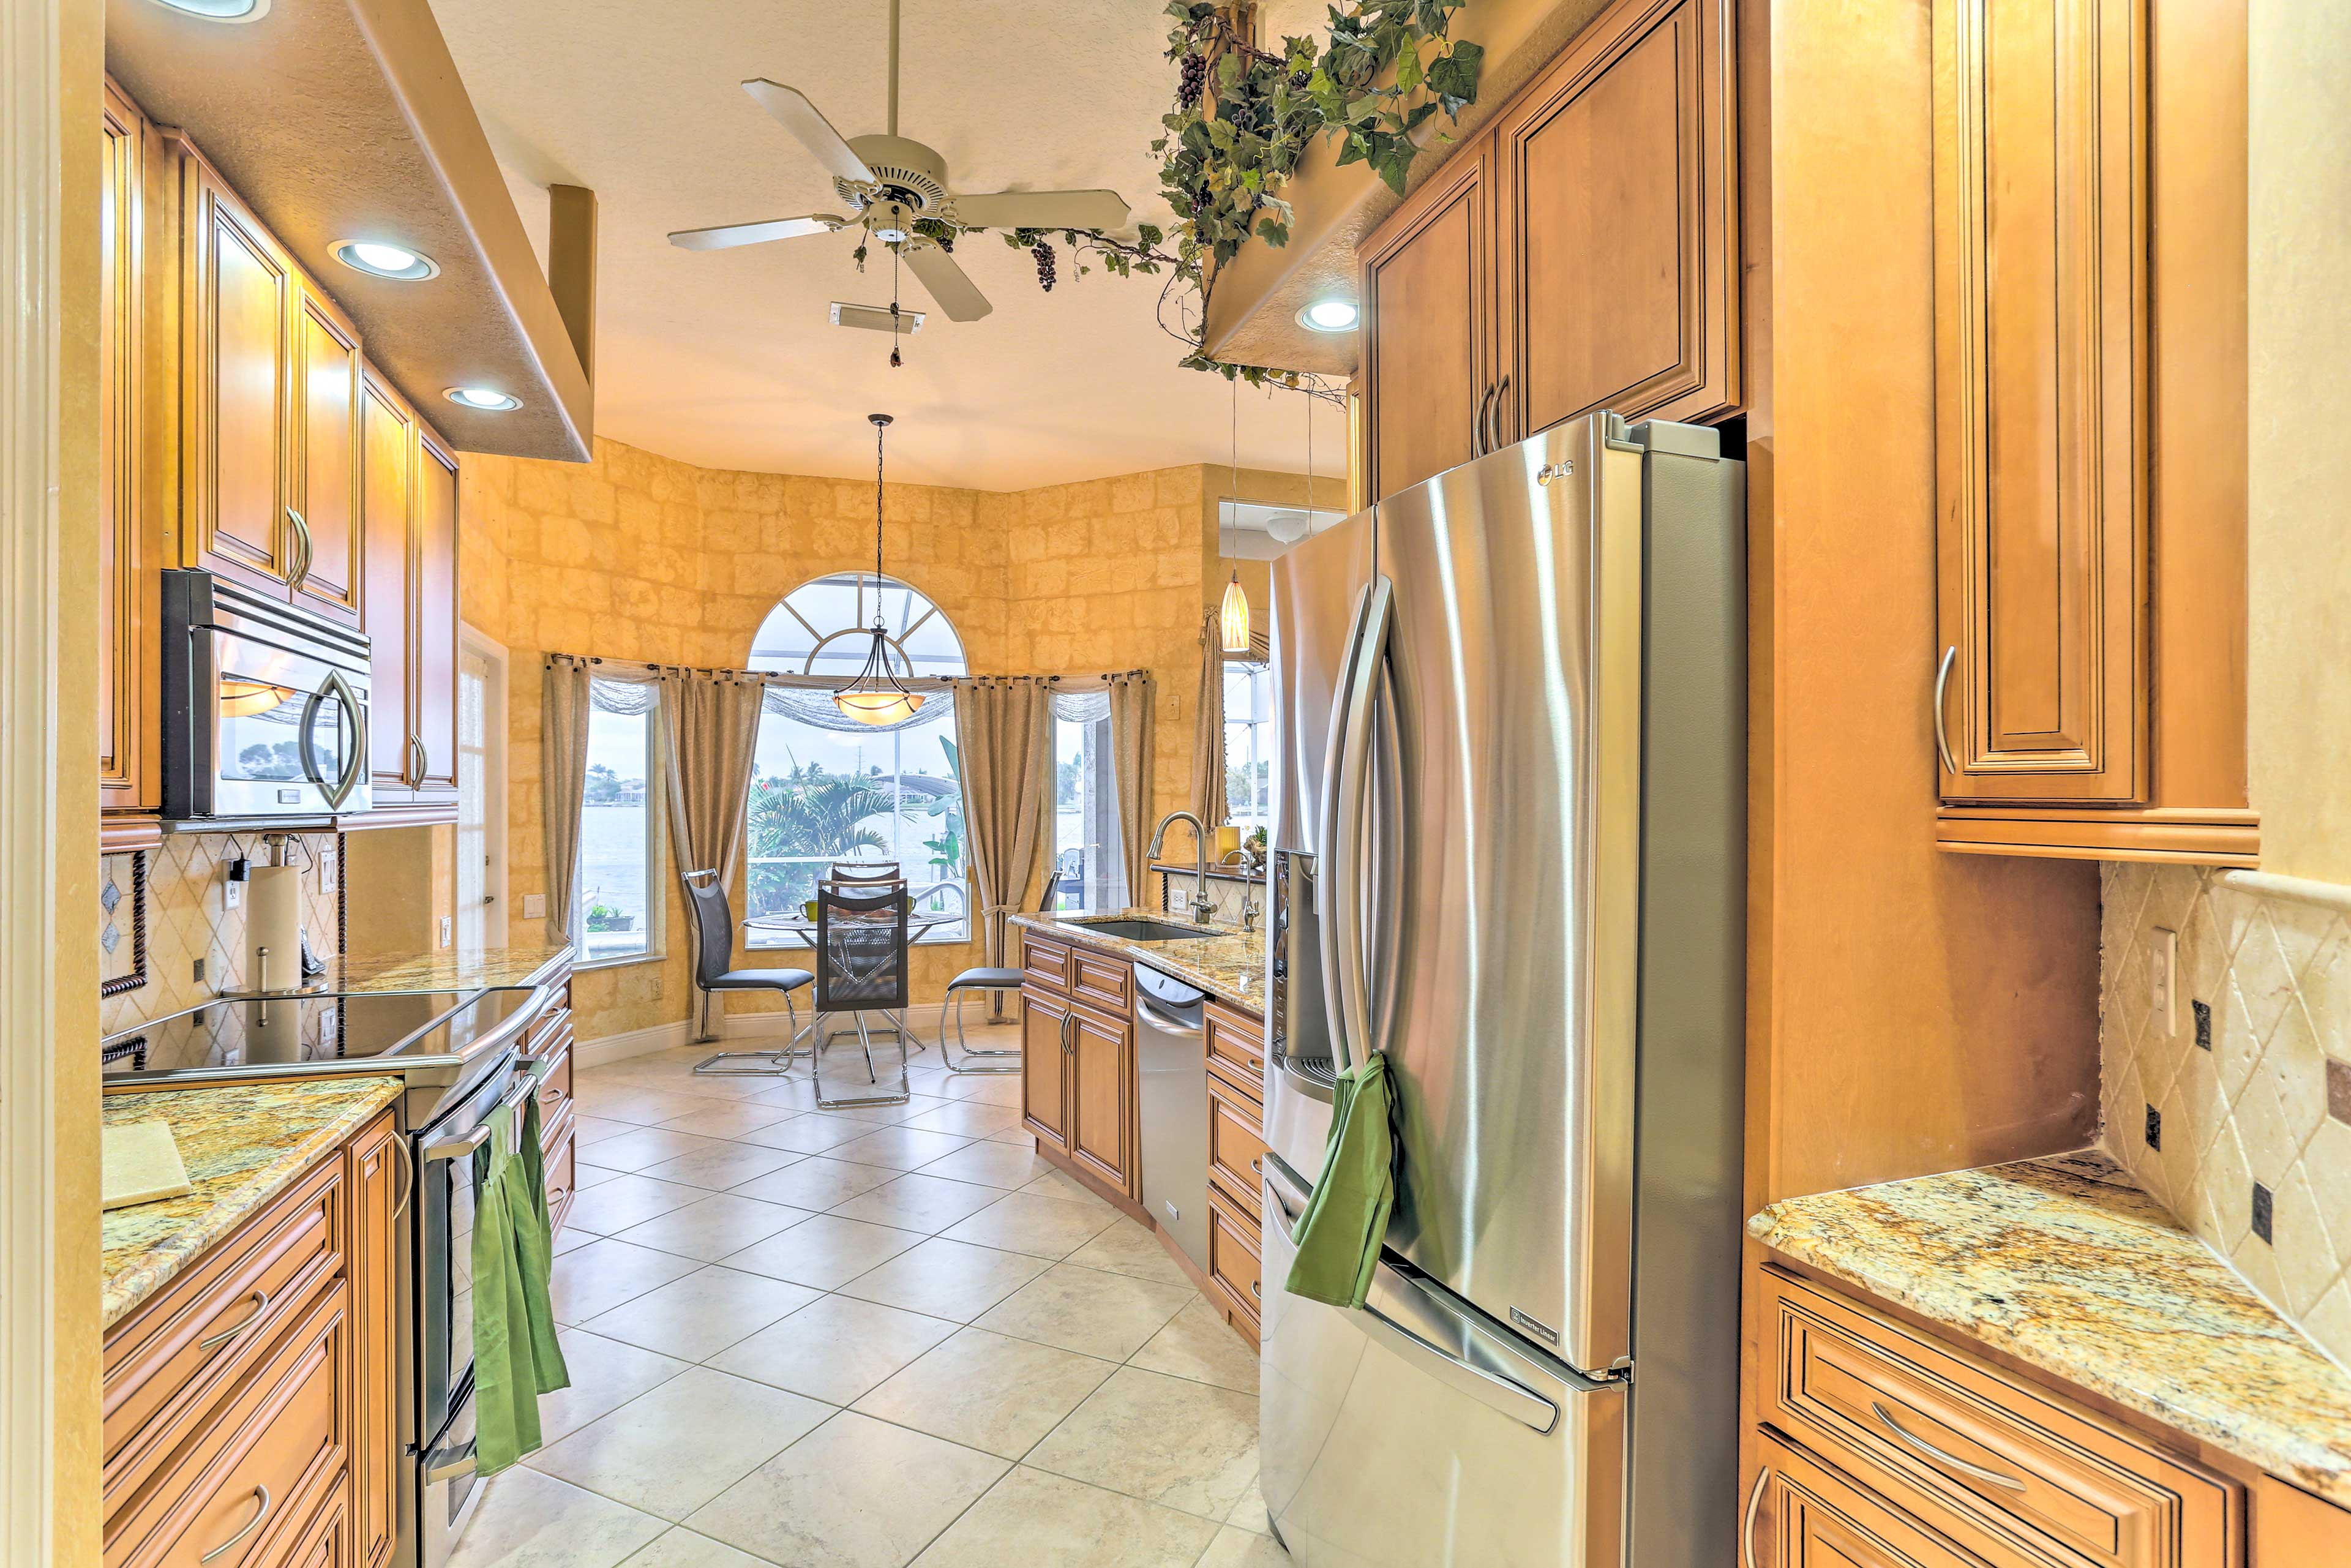 Enjoy views even while cooking in the fully equipped kitchen!